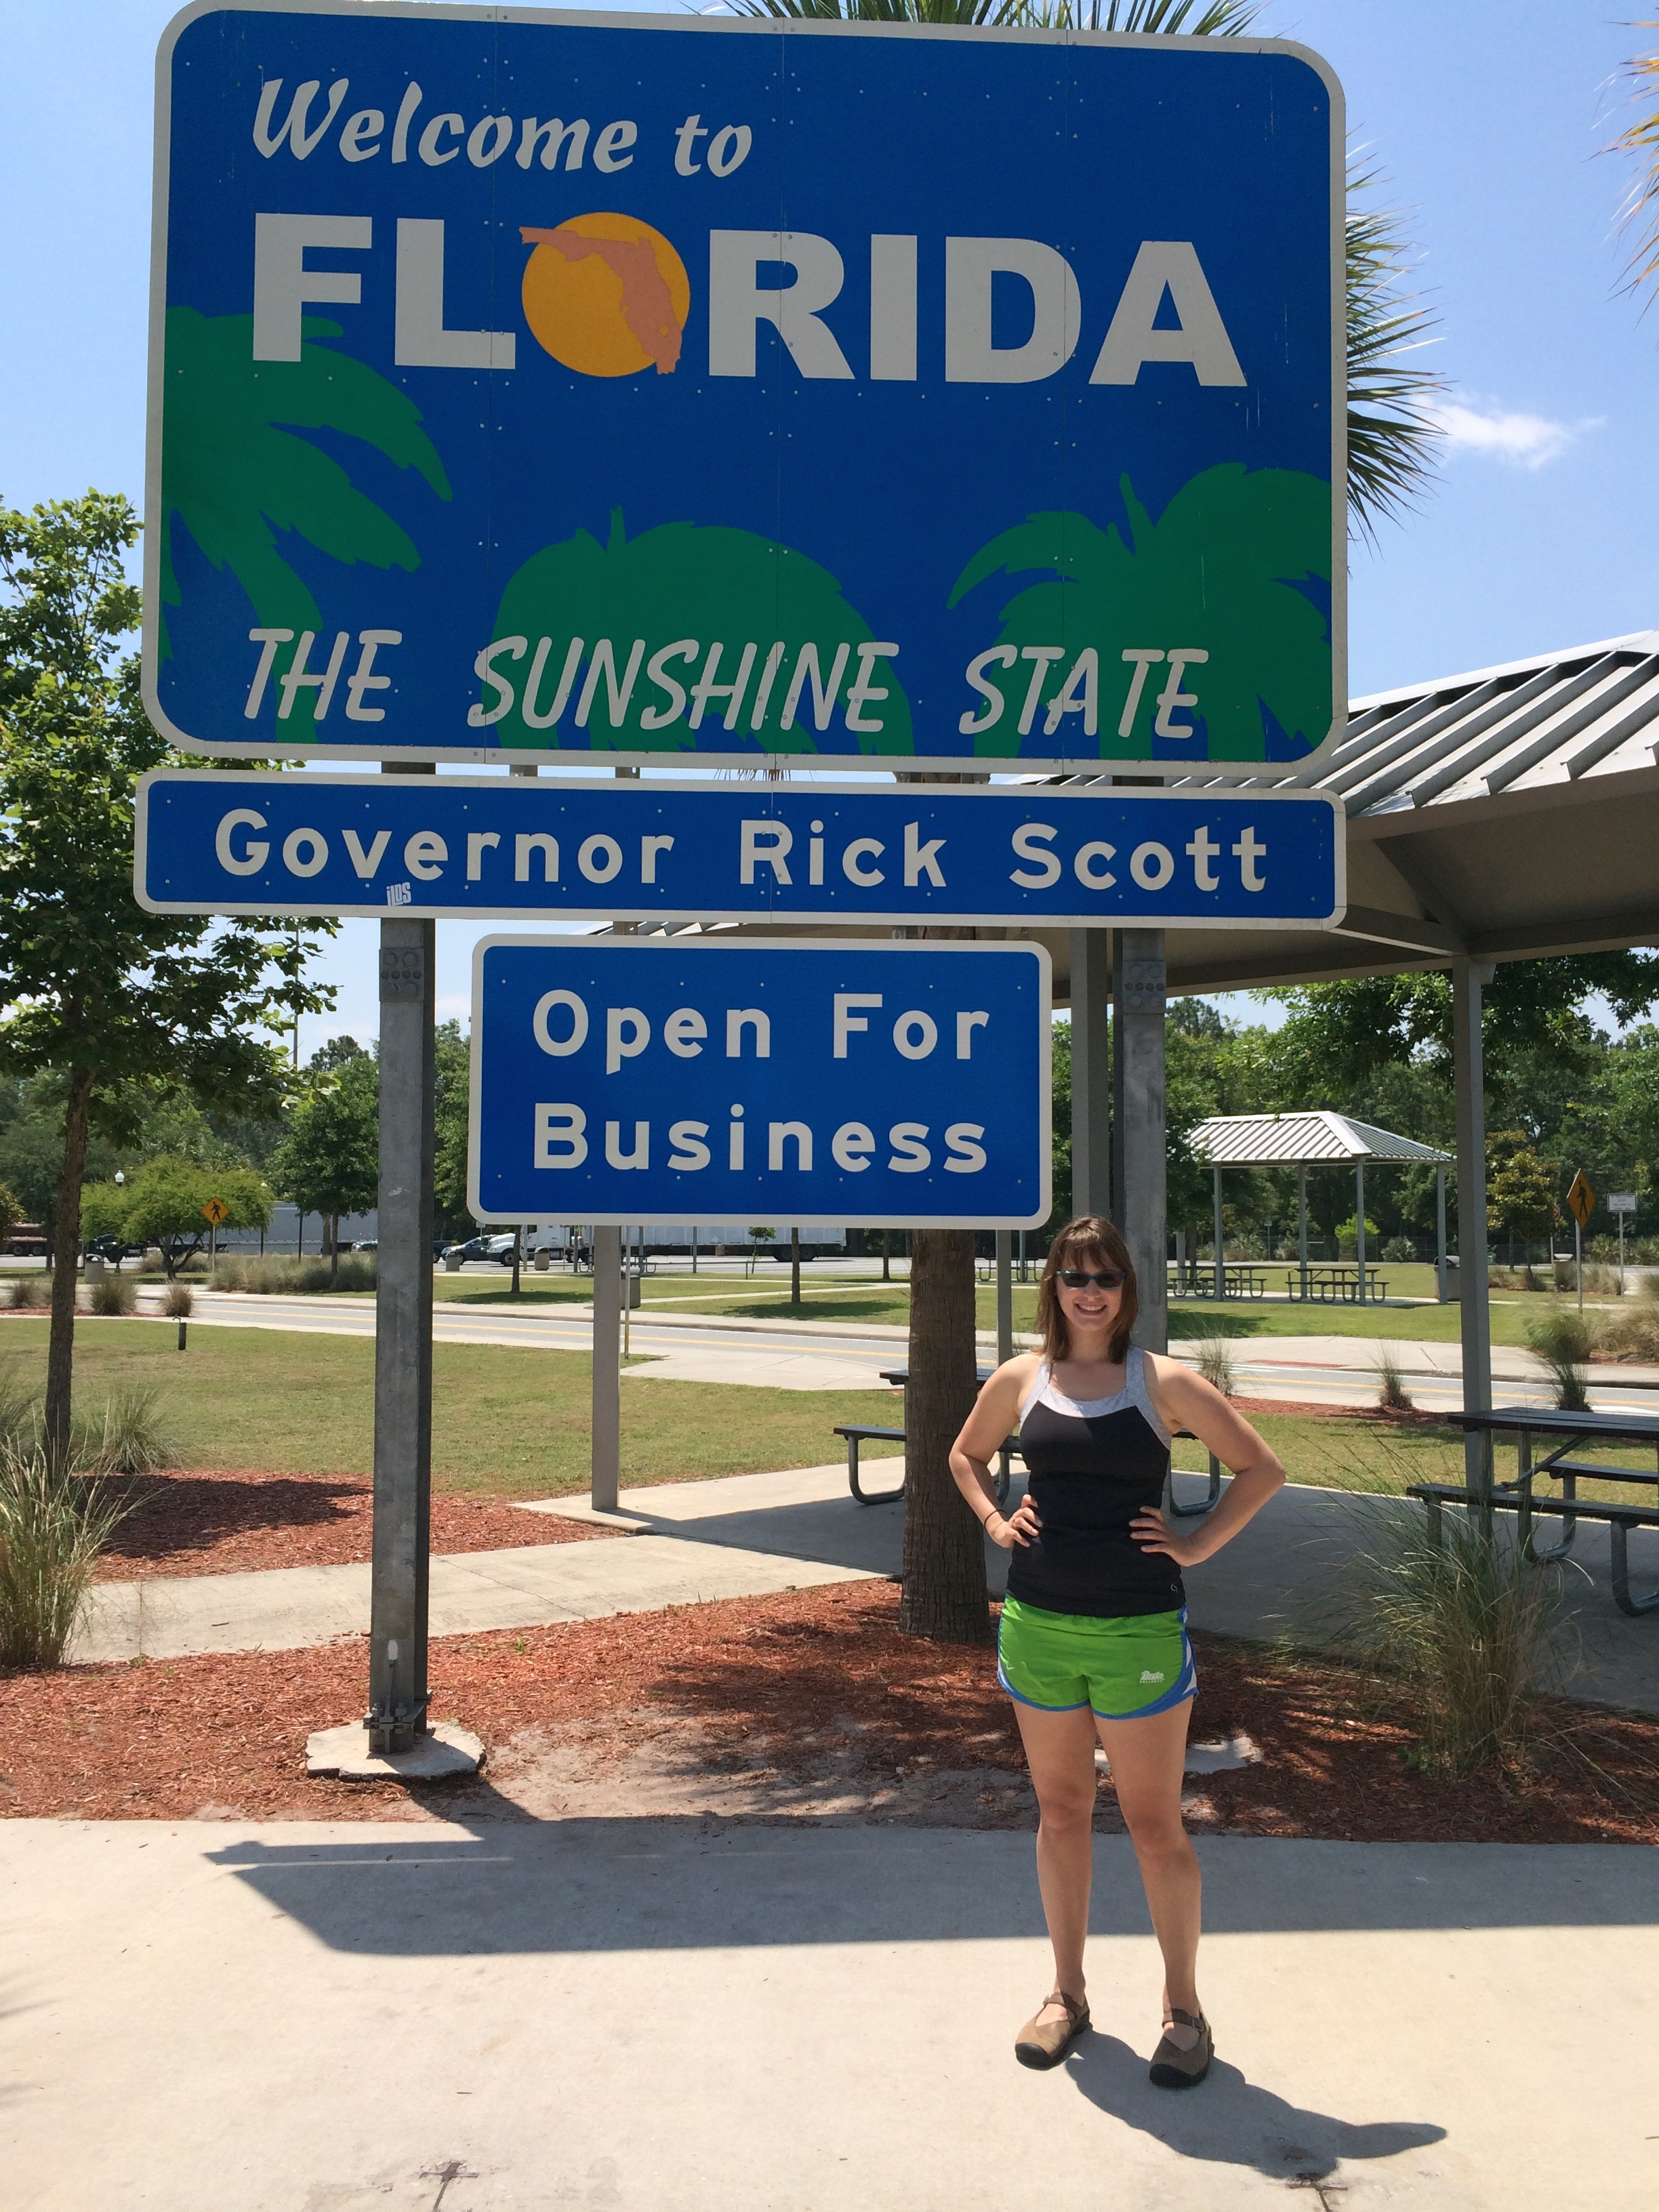 Welcome to Florida!